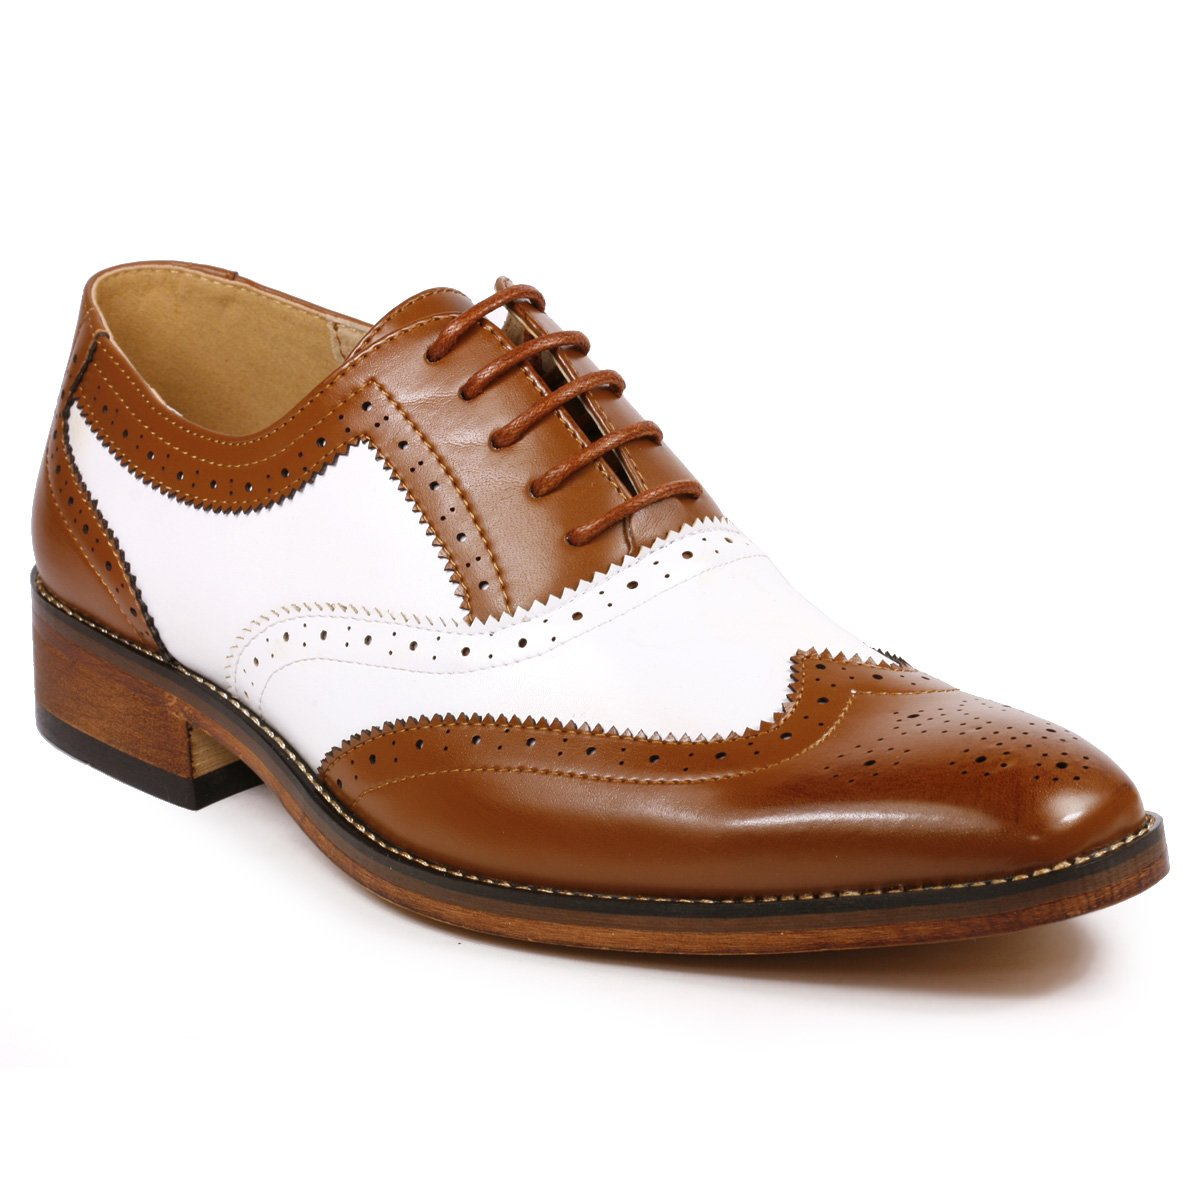 1920s Men's Fashion UK | Peaky Blinders Clothing Mens Two Tone Perforated Wing Tip Lace Up Oxford Dress Shoes Metrocharm MC118  £47.49 AT vintagedancer.com